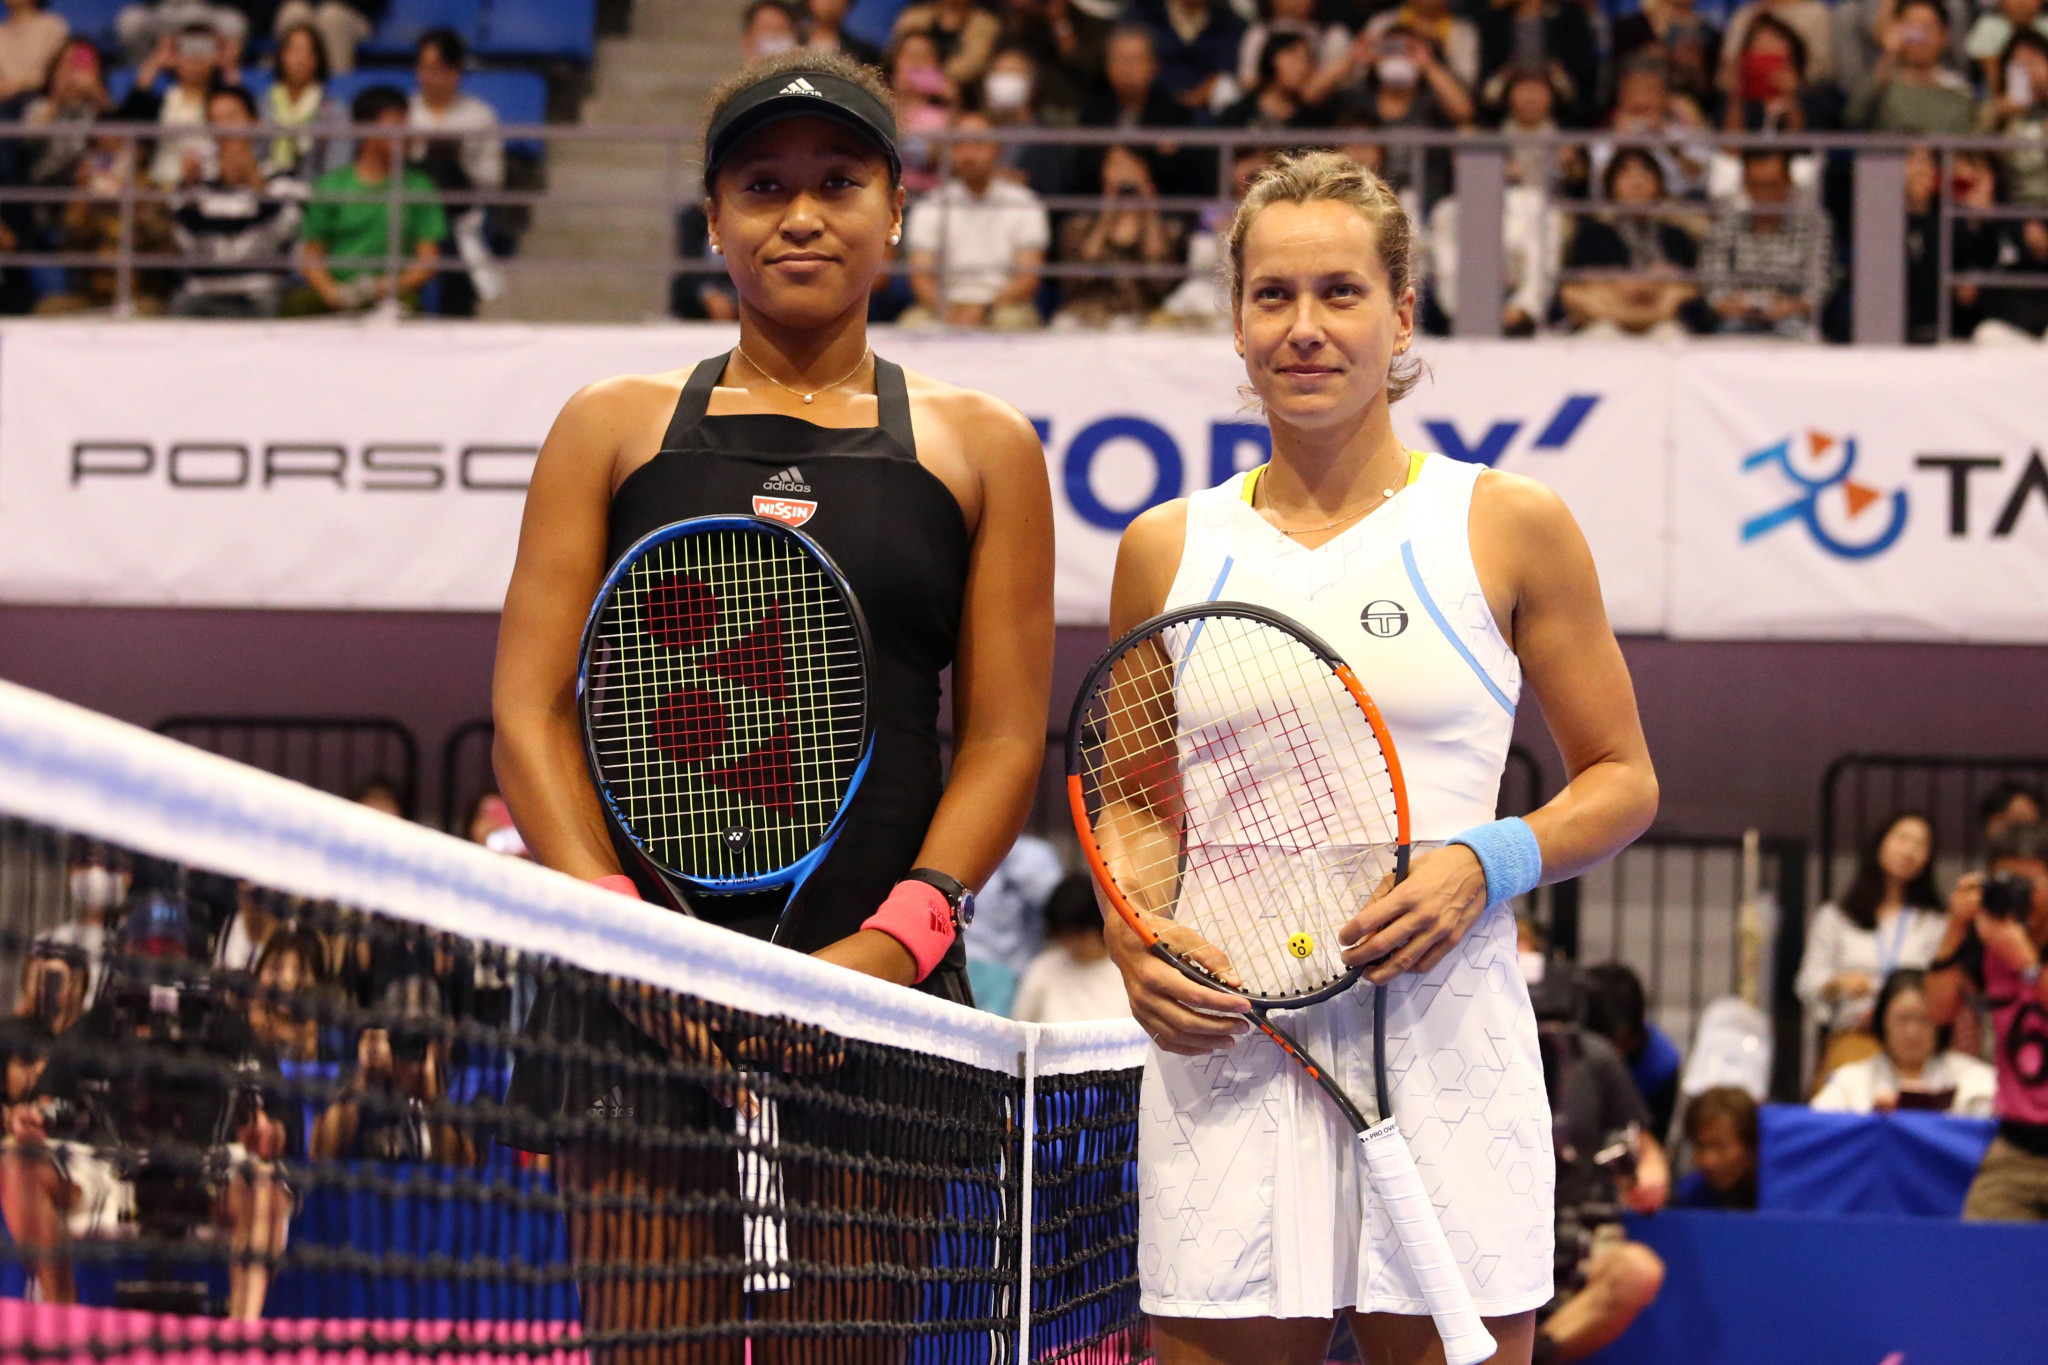 Japan's Naomi Osaka and Czech Barbora Strýcová before their quarter-final at the Pan Pacific Open in Tokyo, which the newly-crownded US Open champion won for her ninth victory in a row ©Getty Images